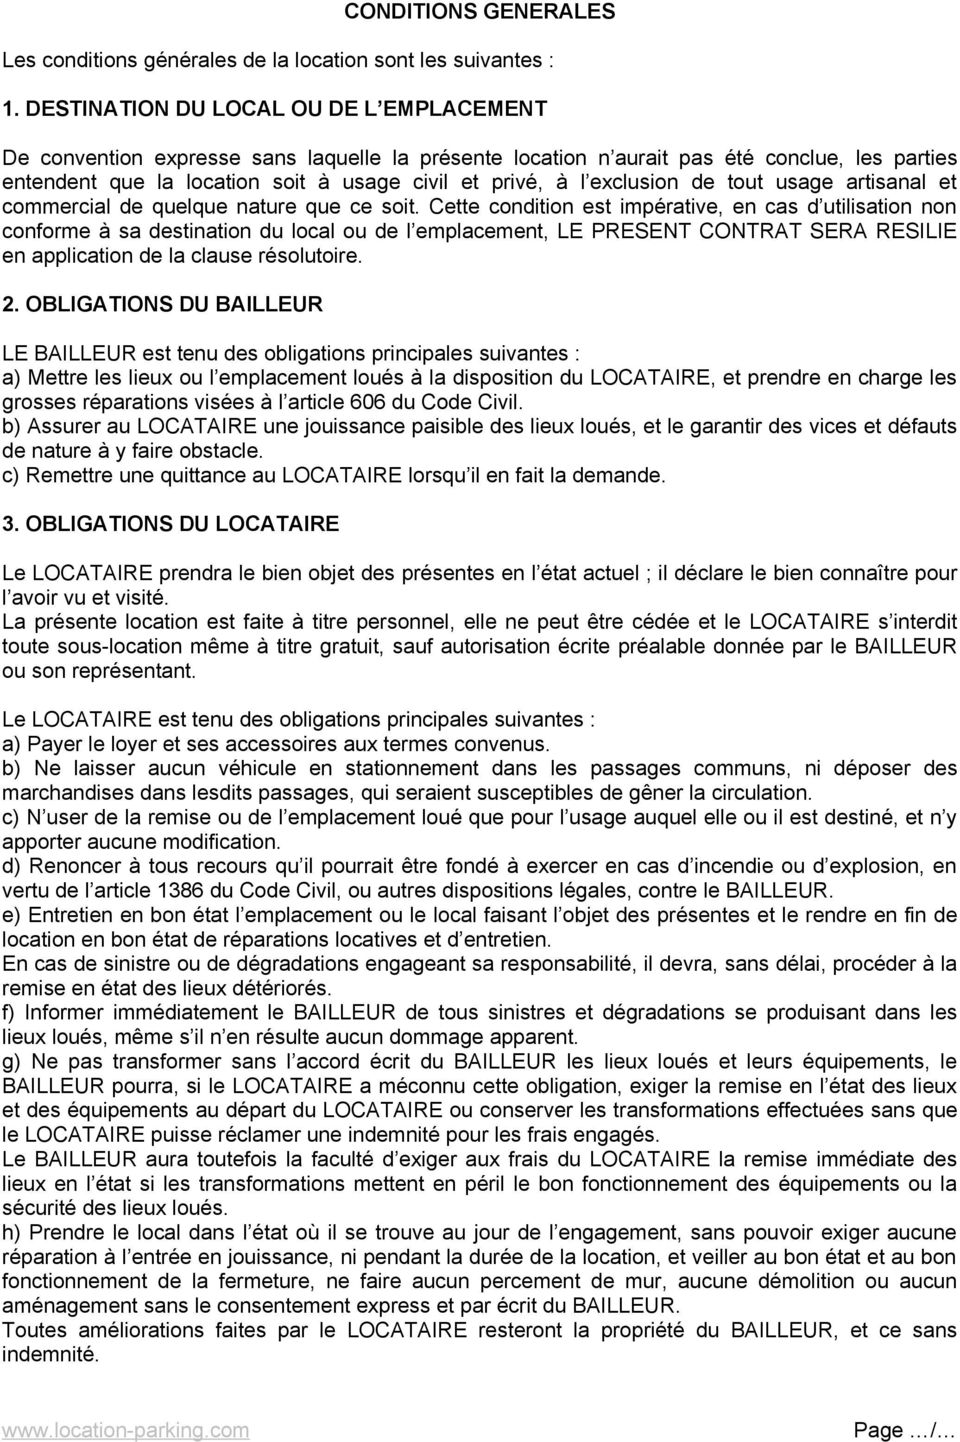 Contrat De Location Articles 1714 A 1751 Du Code Civil Entre Les